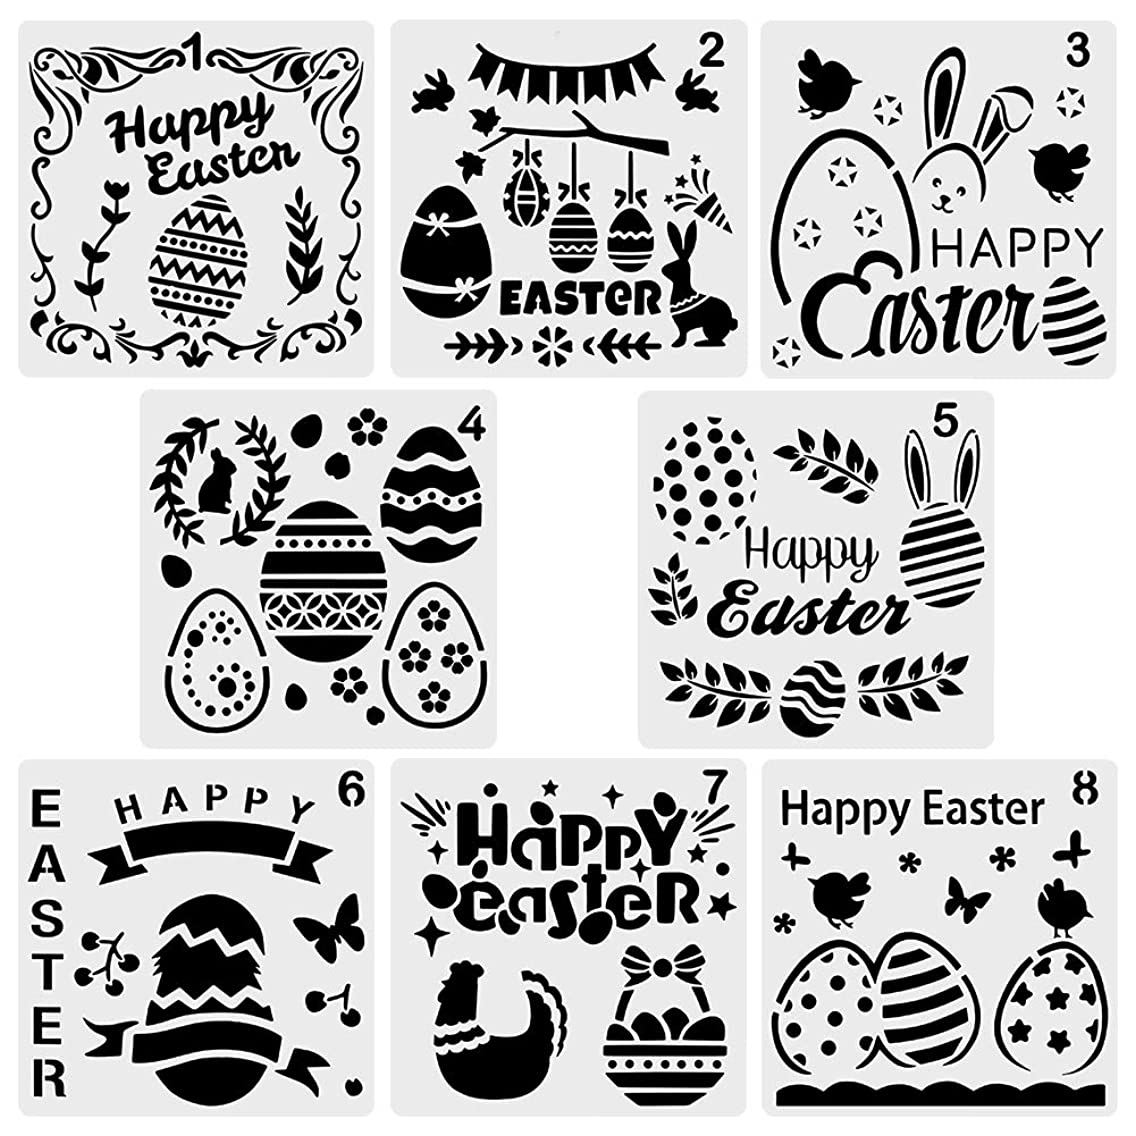 URlighting 8 Pcs Happy Easter Stencils - Plastic Easter Painting Stencils Template (5 × 5 inches), Egg Bunny Rabbit Flower Pattern Style for DIY Craft Notebook Diary Scrapbooking Cards Making